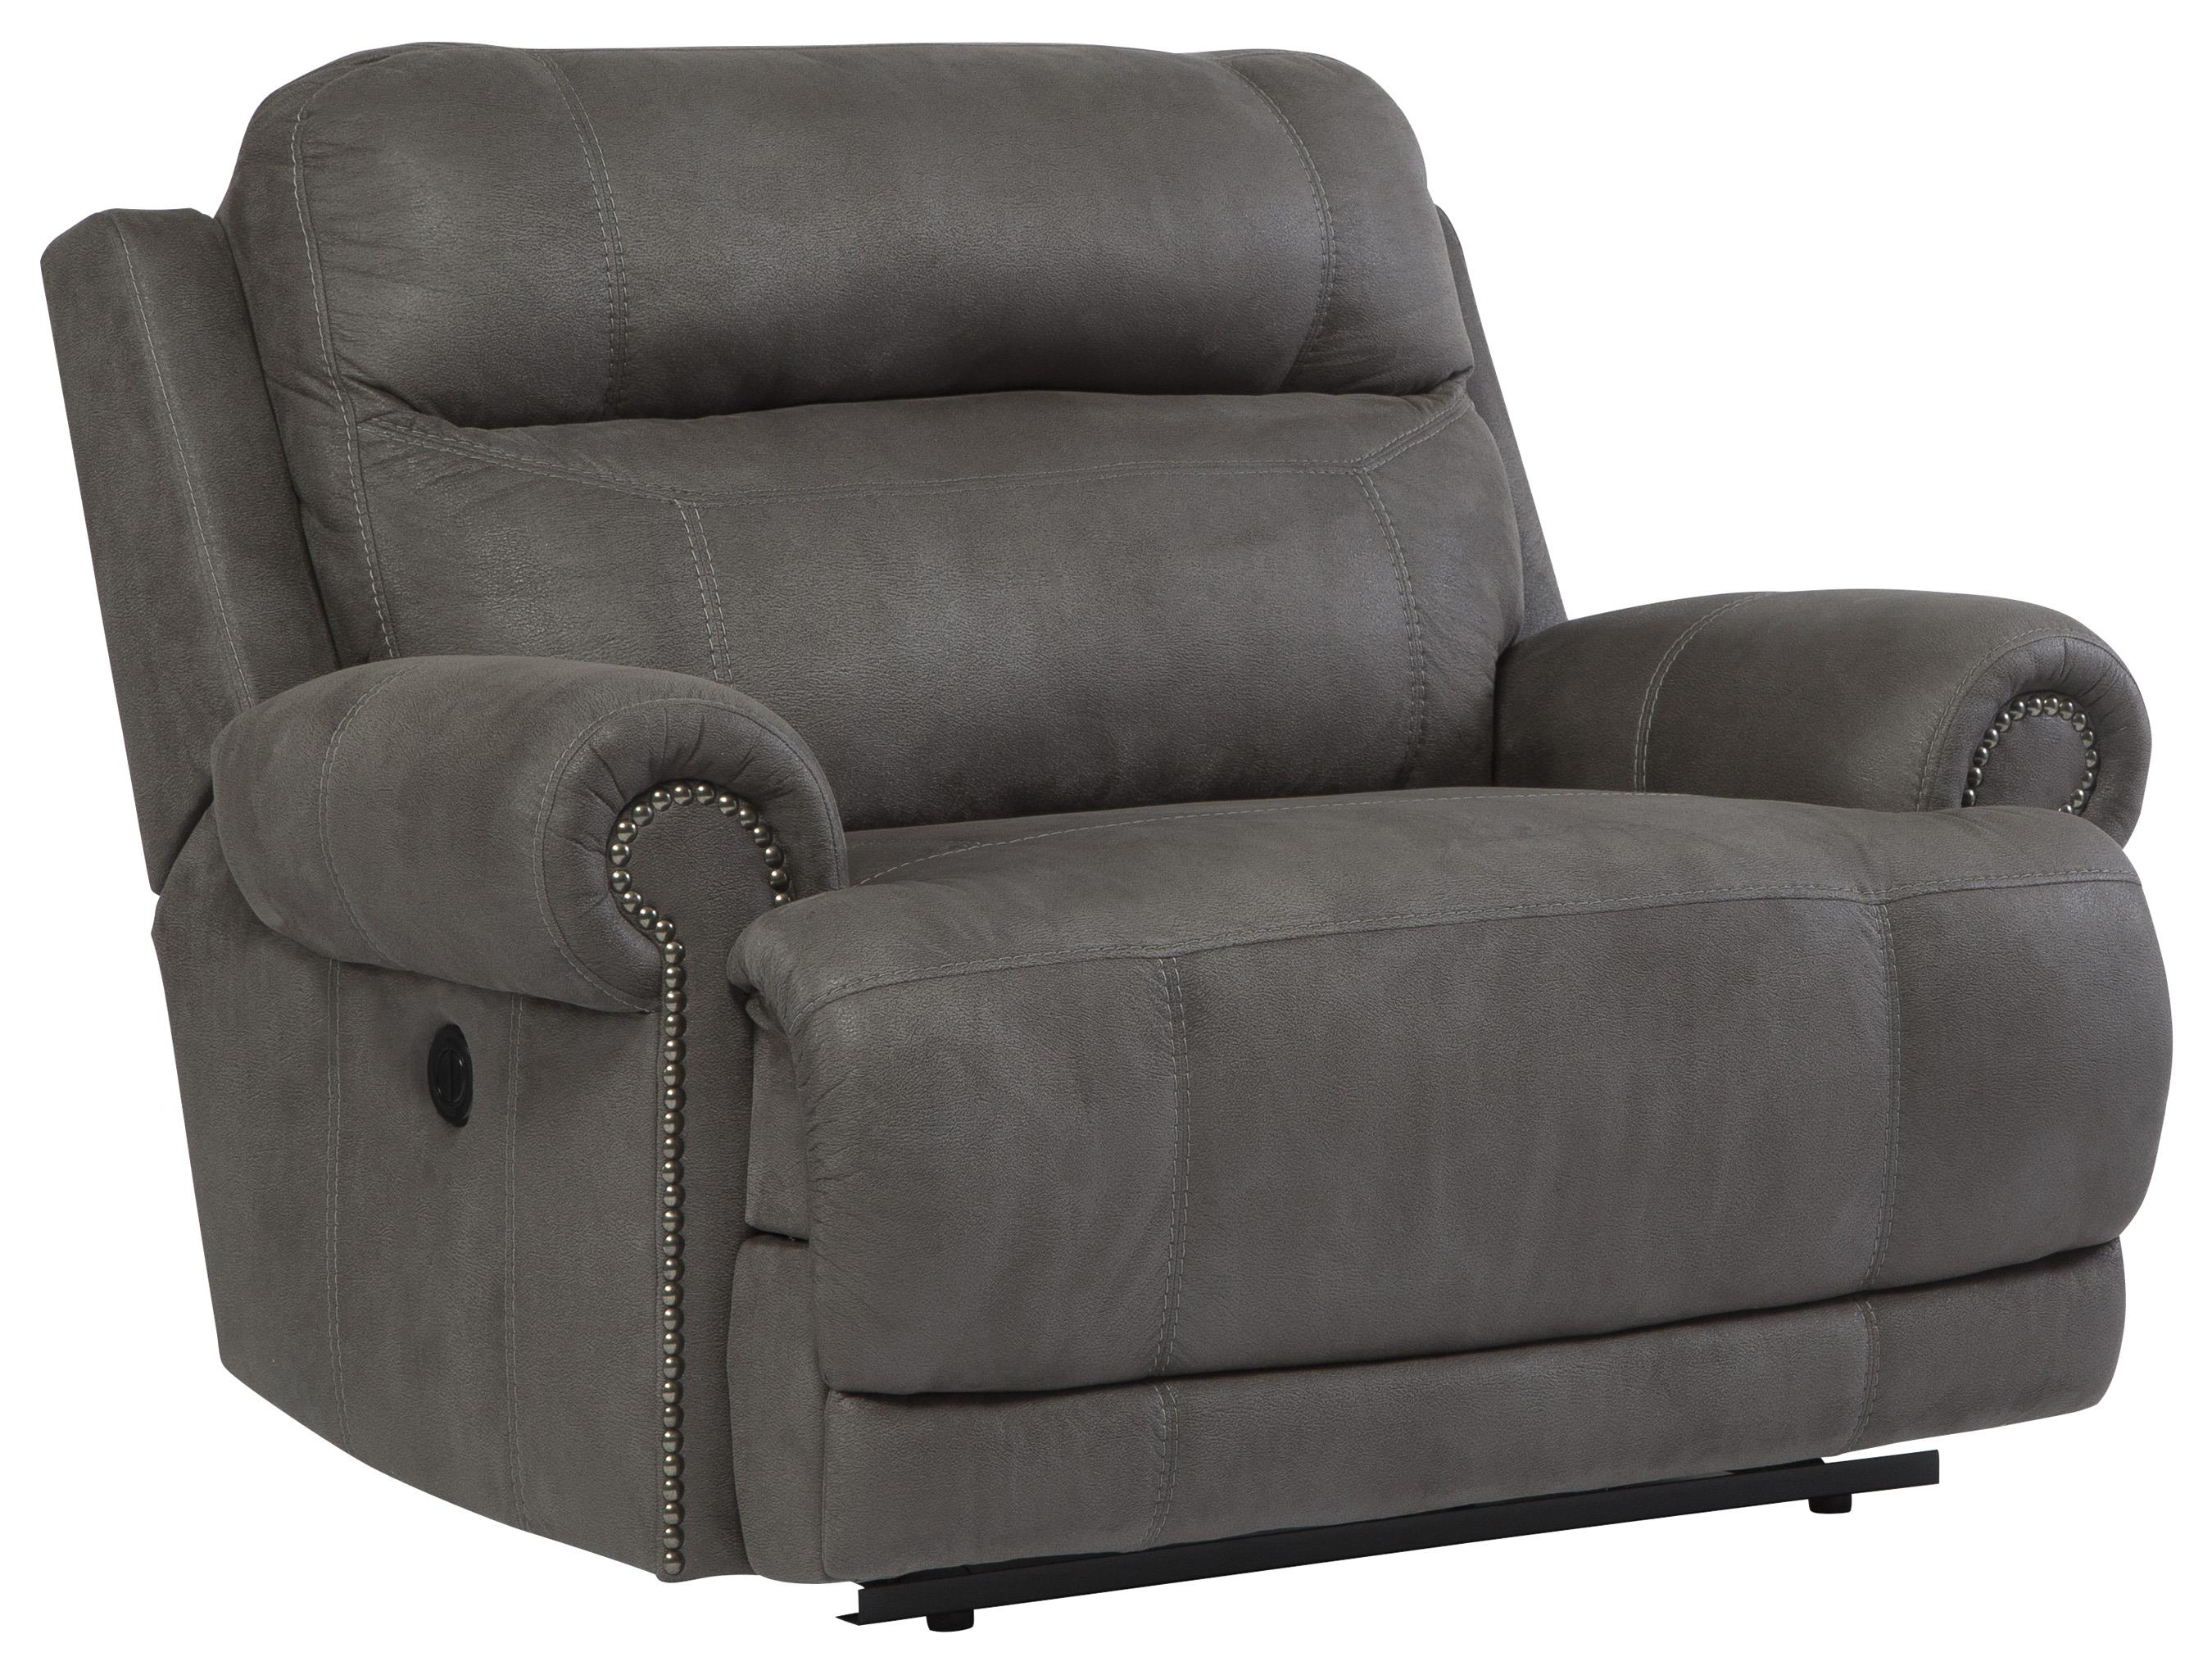 Signature Design by Ashley Austere - Gray Zero Wall Power Wide Recliner - Item Number: 3840182